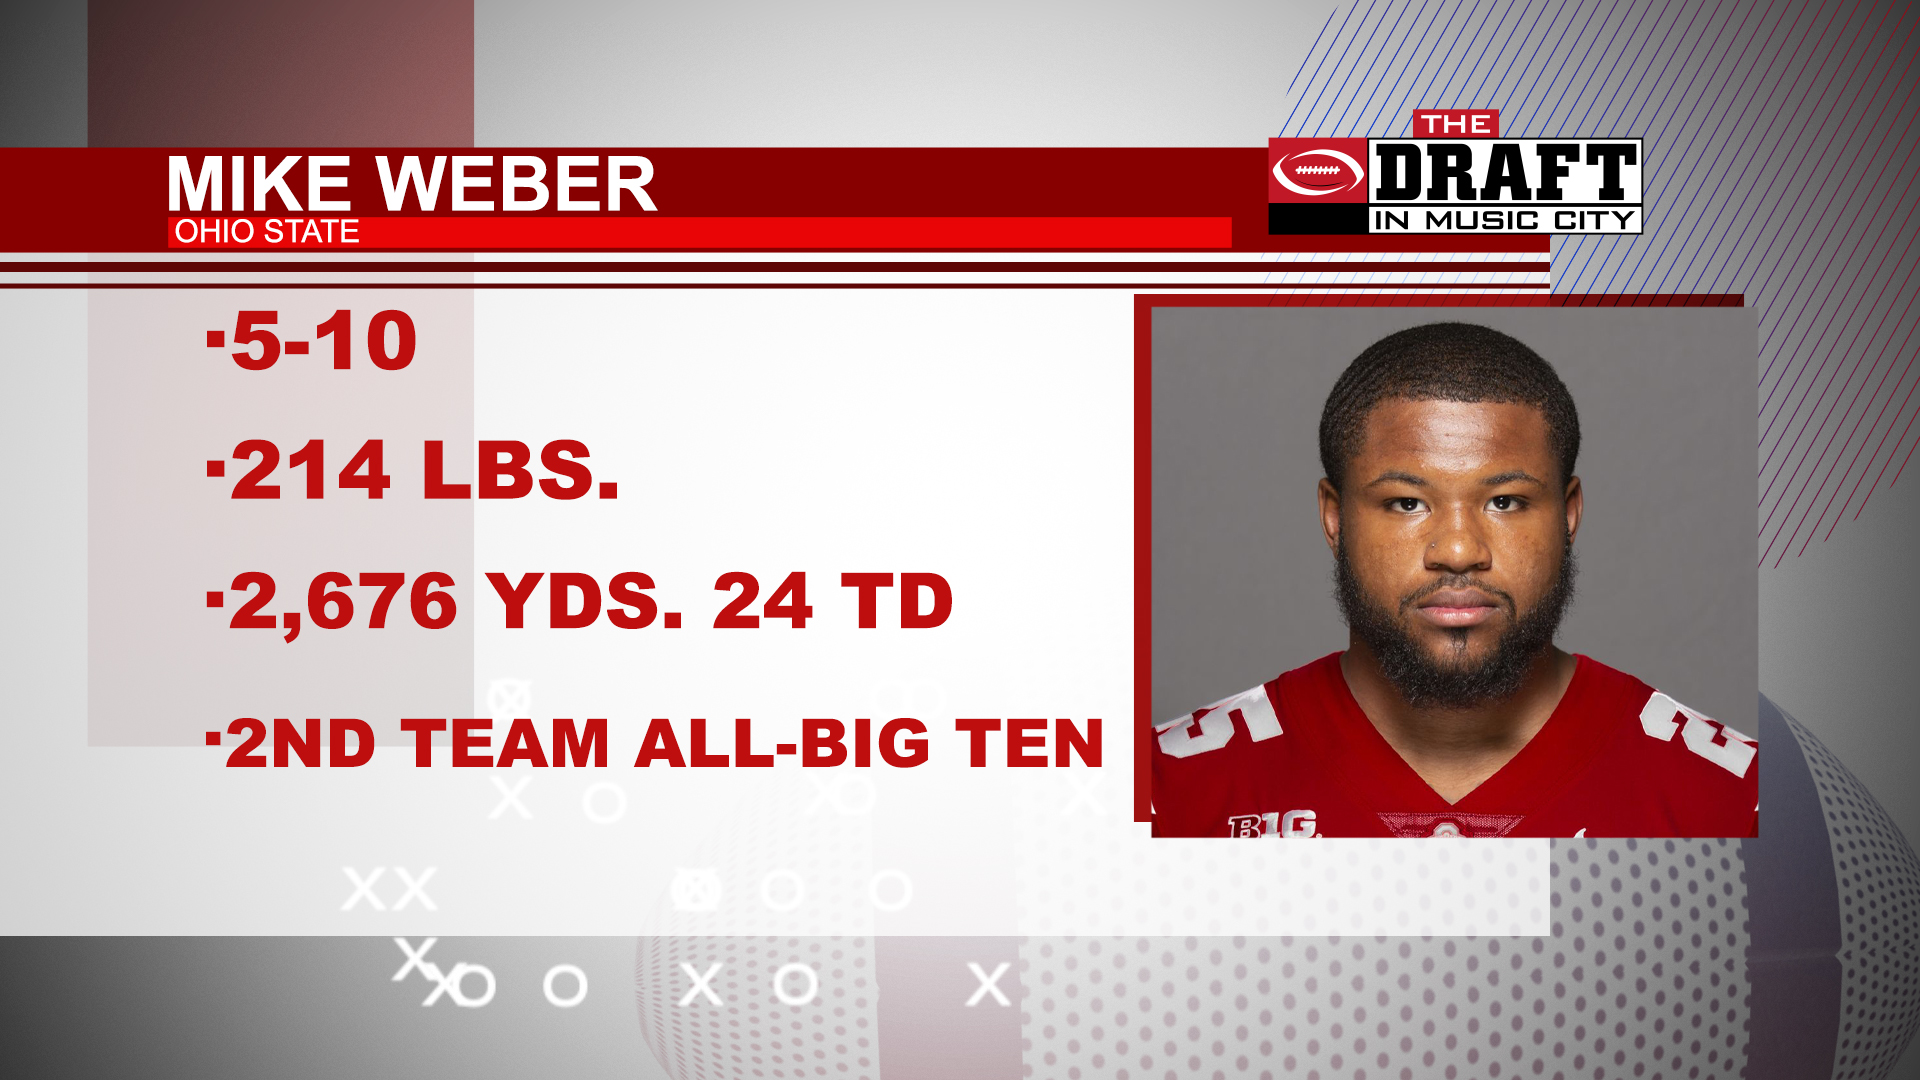 Mike Weber Draft in Music City